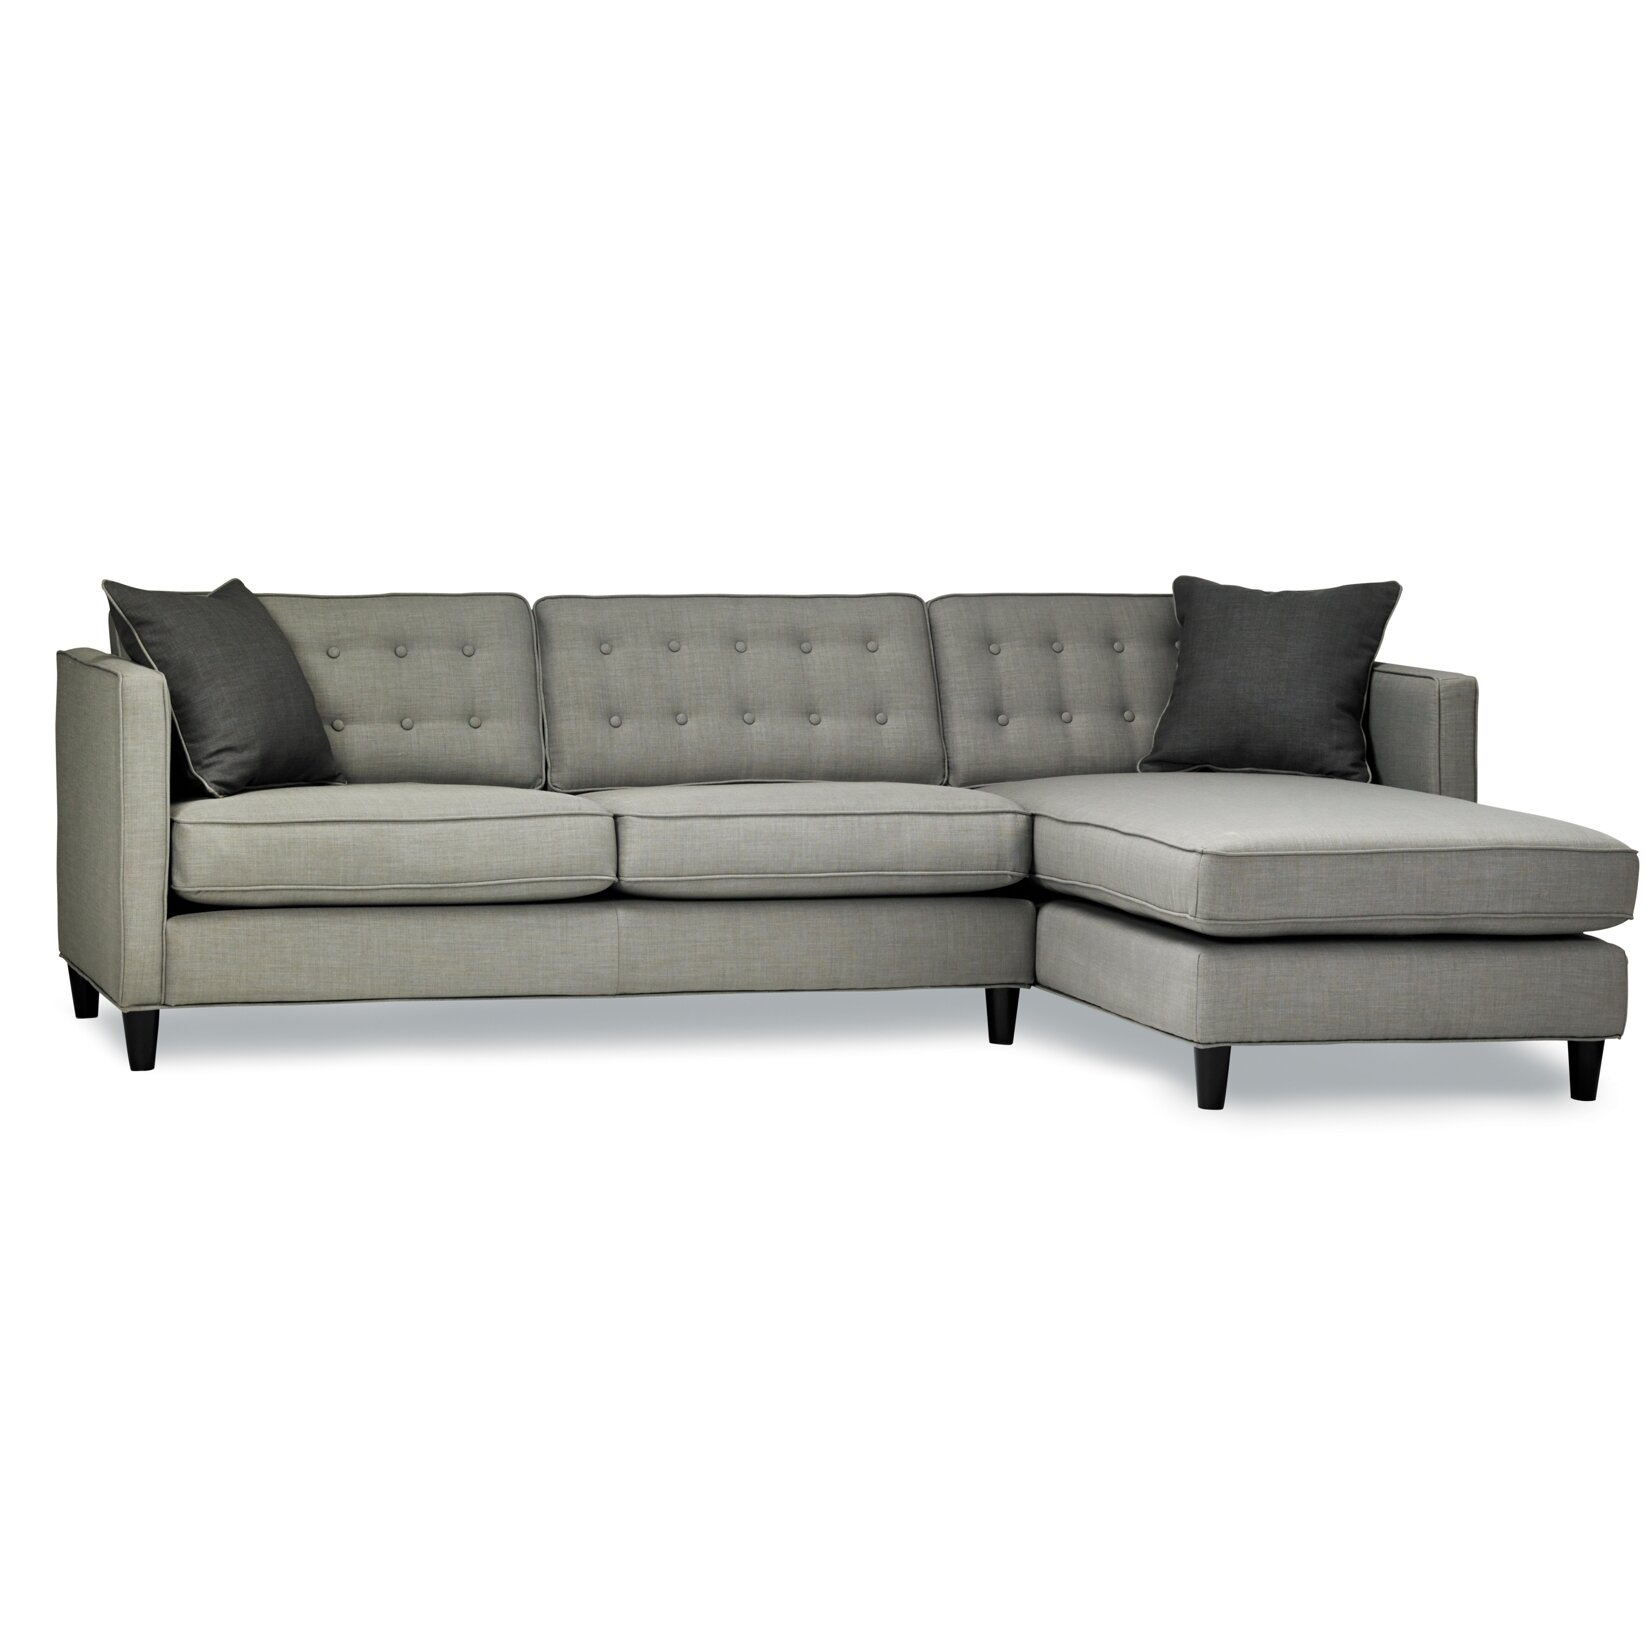 sofas to go potts sectional reviews. Black Bedroom Furniture Sets. Home Design Ideas